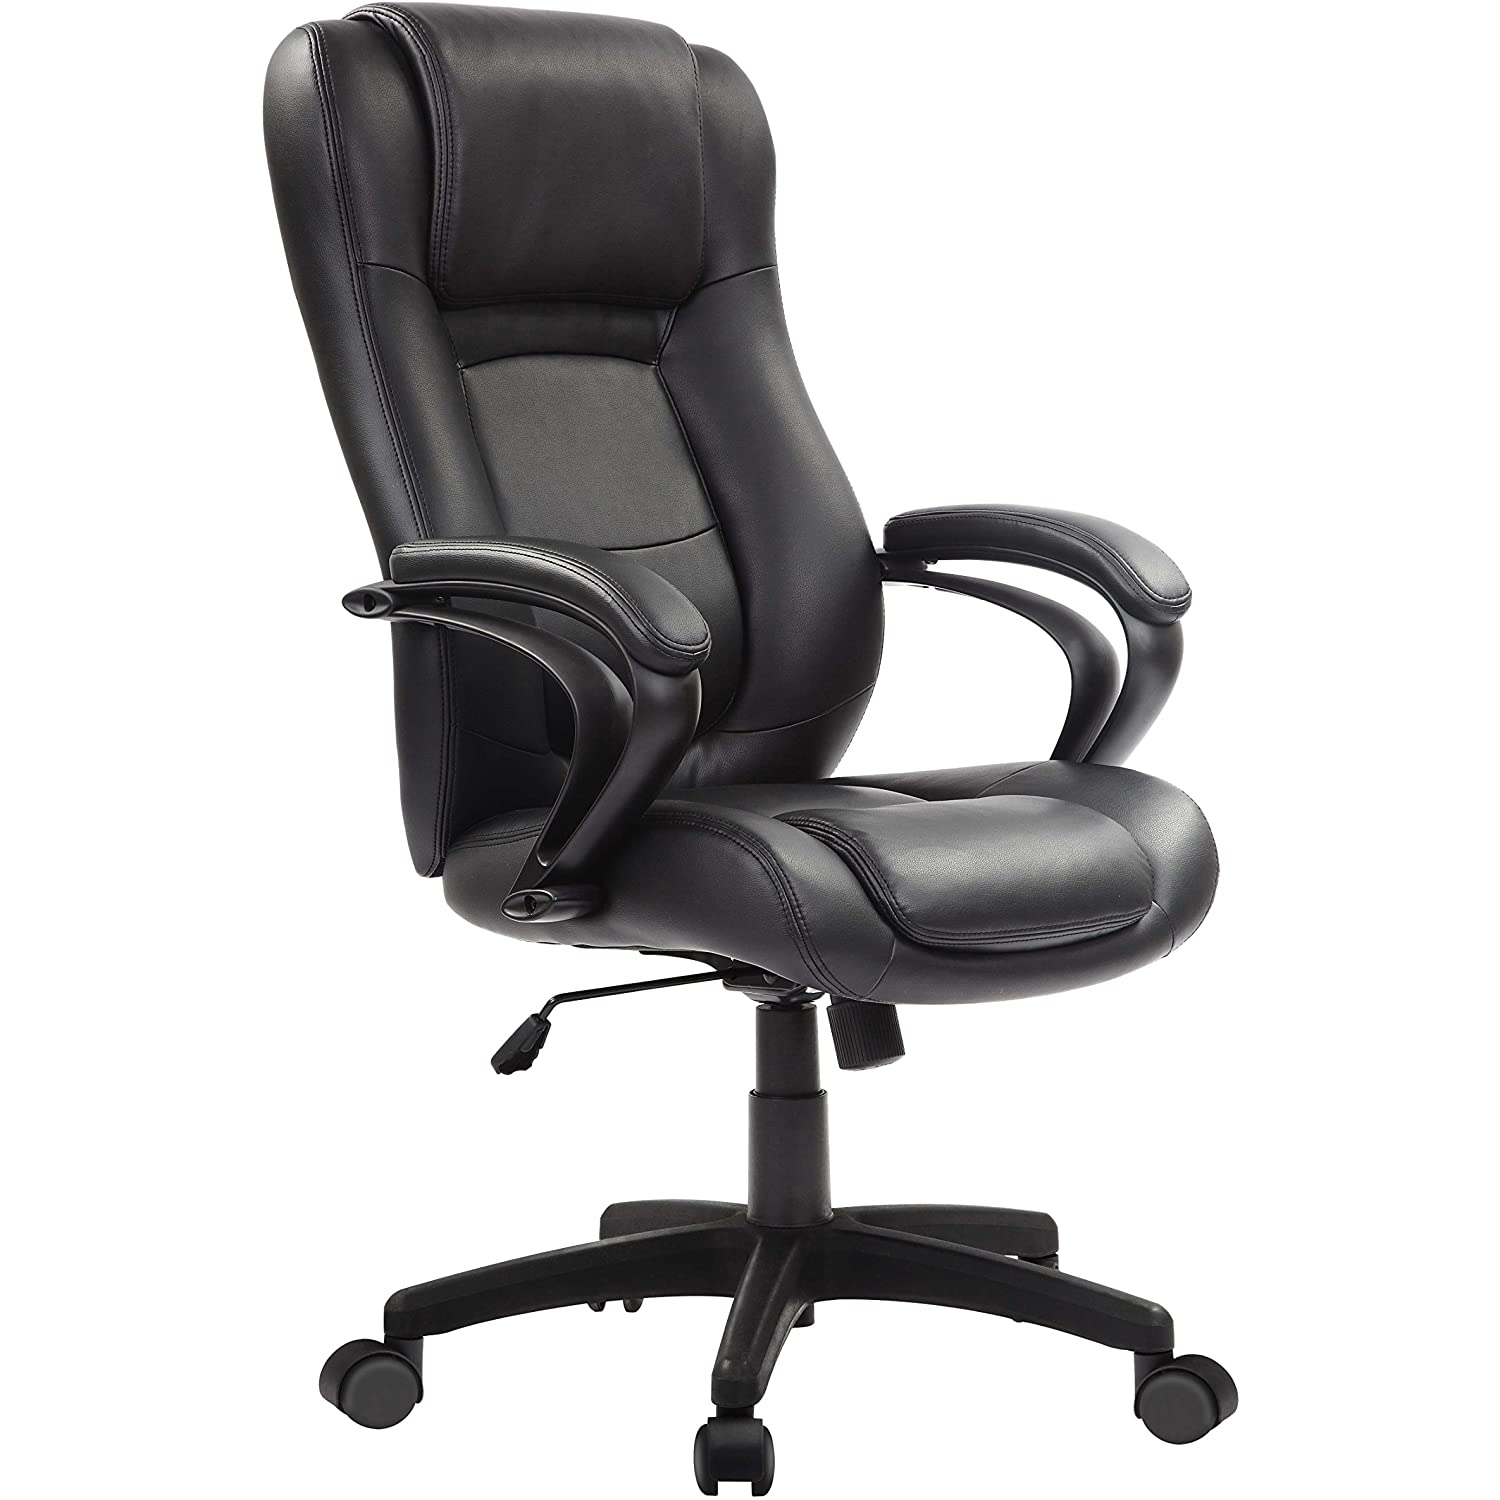 "Blenceo Black Leather Office Chair 26.37""x 27.55""x 44.8"""